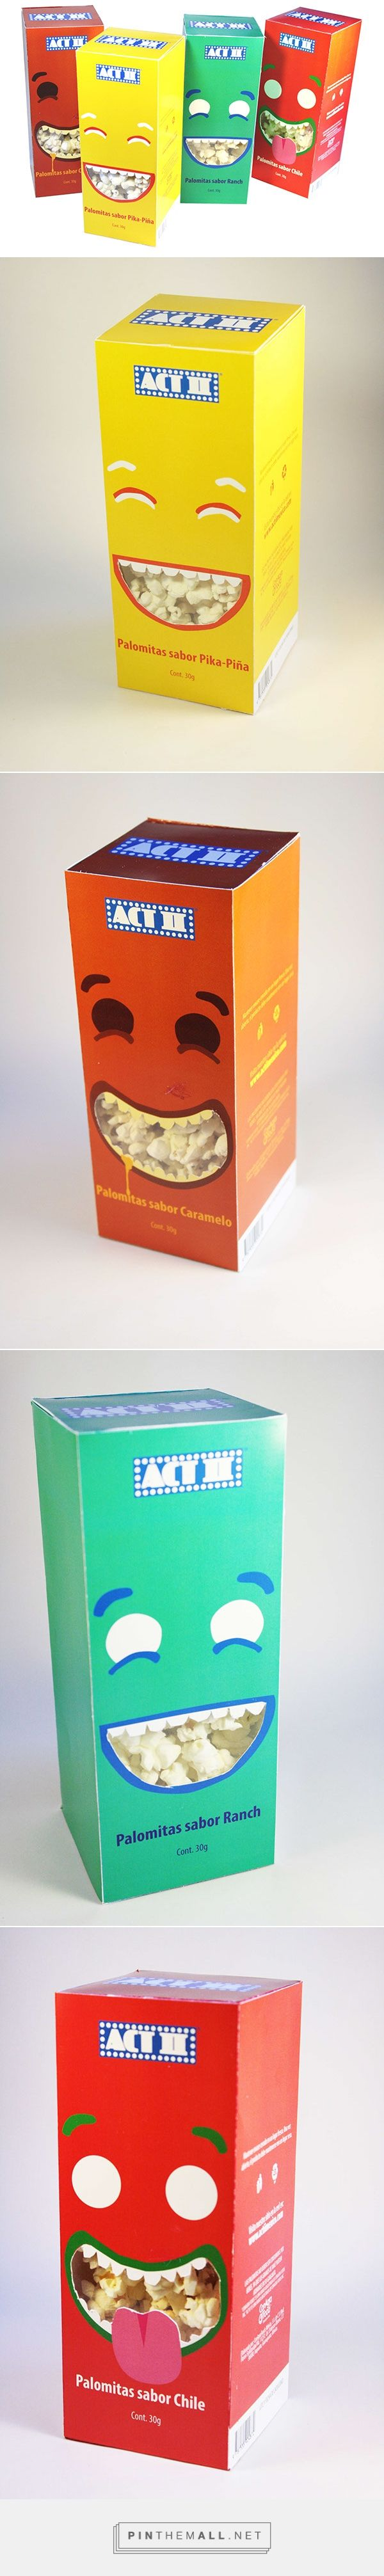 Graphic design and packaging for Kid's Popcorn Packaging on Behance by Paulina Arzillier Queretaro, Mexico curated by Packaging Diva PD. Cute packaging for the smile file : )